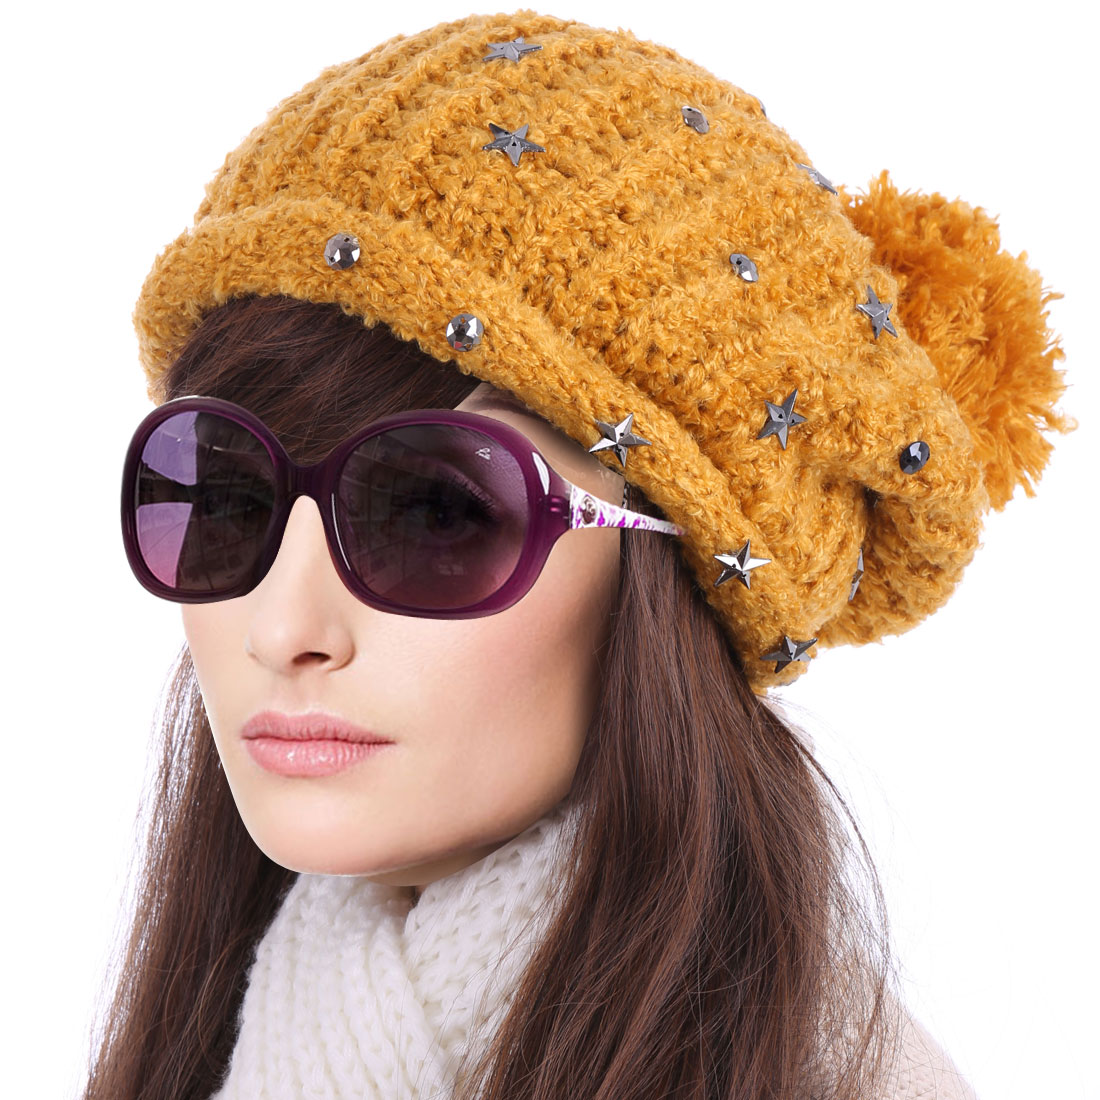 YM-20# Women's Pom Pom Stars Decor Warm Knitted Beanie Hat